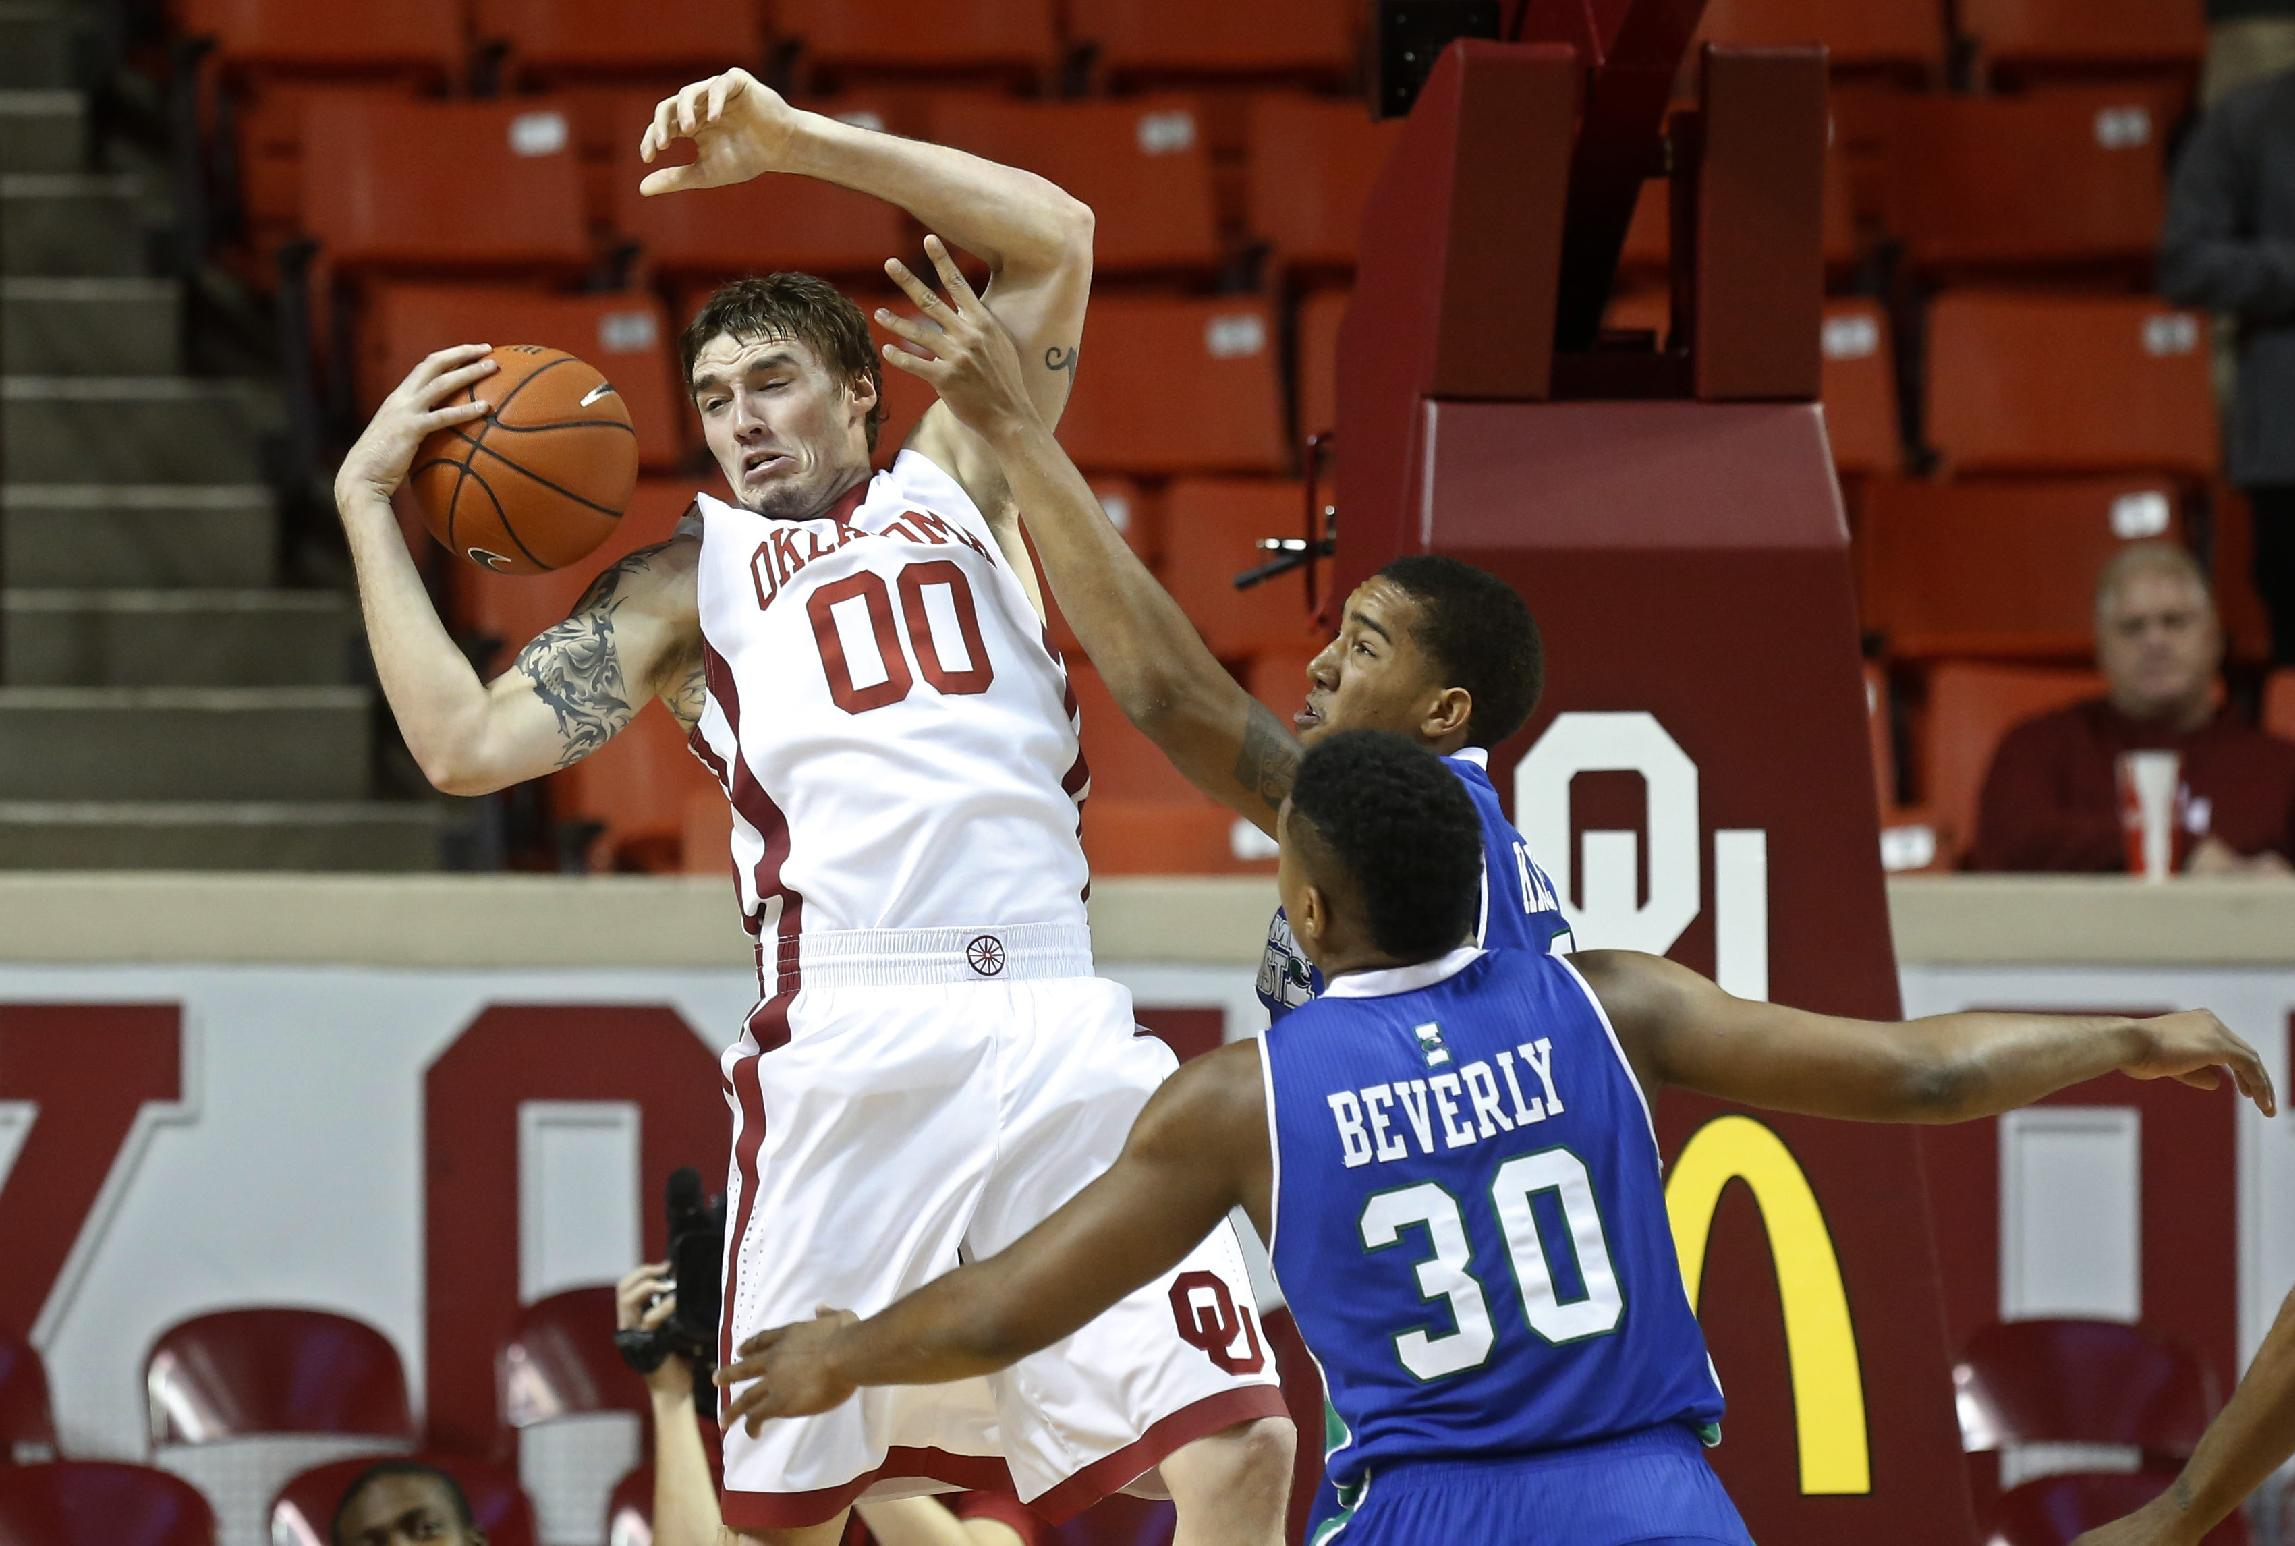 Oklahoma's Ryan Spangler (00) grabs a rebound in front of Texas A&M Corpus Christi forward Jeff Beverly (30) and forward Zane Knowles, rear, during the first half of an NCAA college basketball game in Norman, Okla., Thursday, Dec. 5, 2013